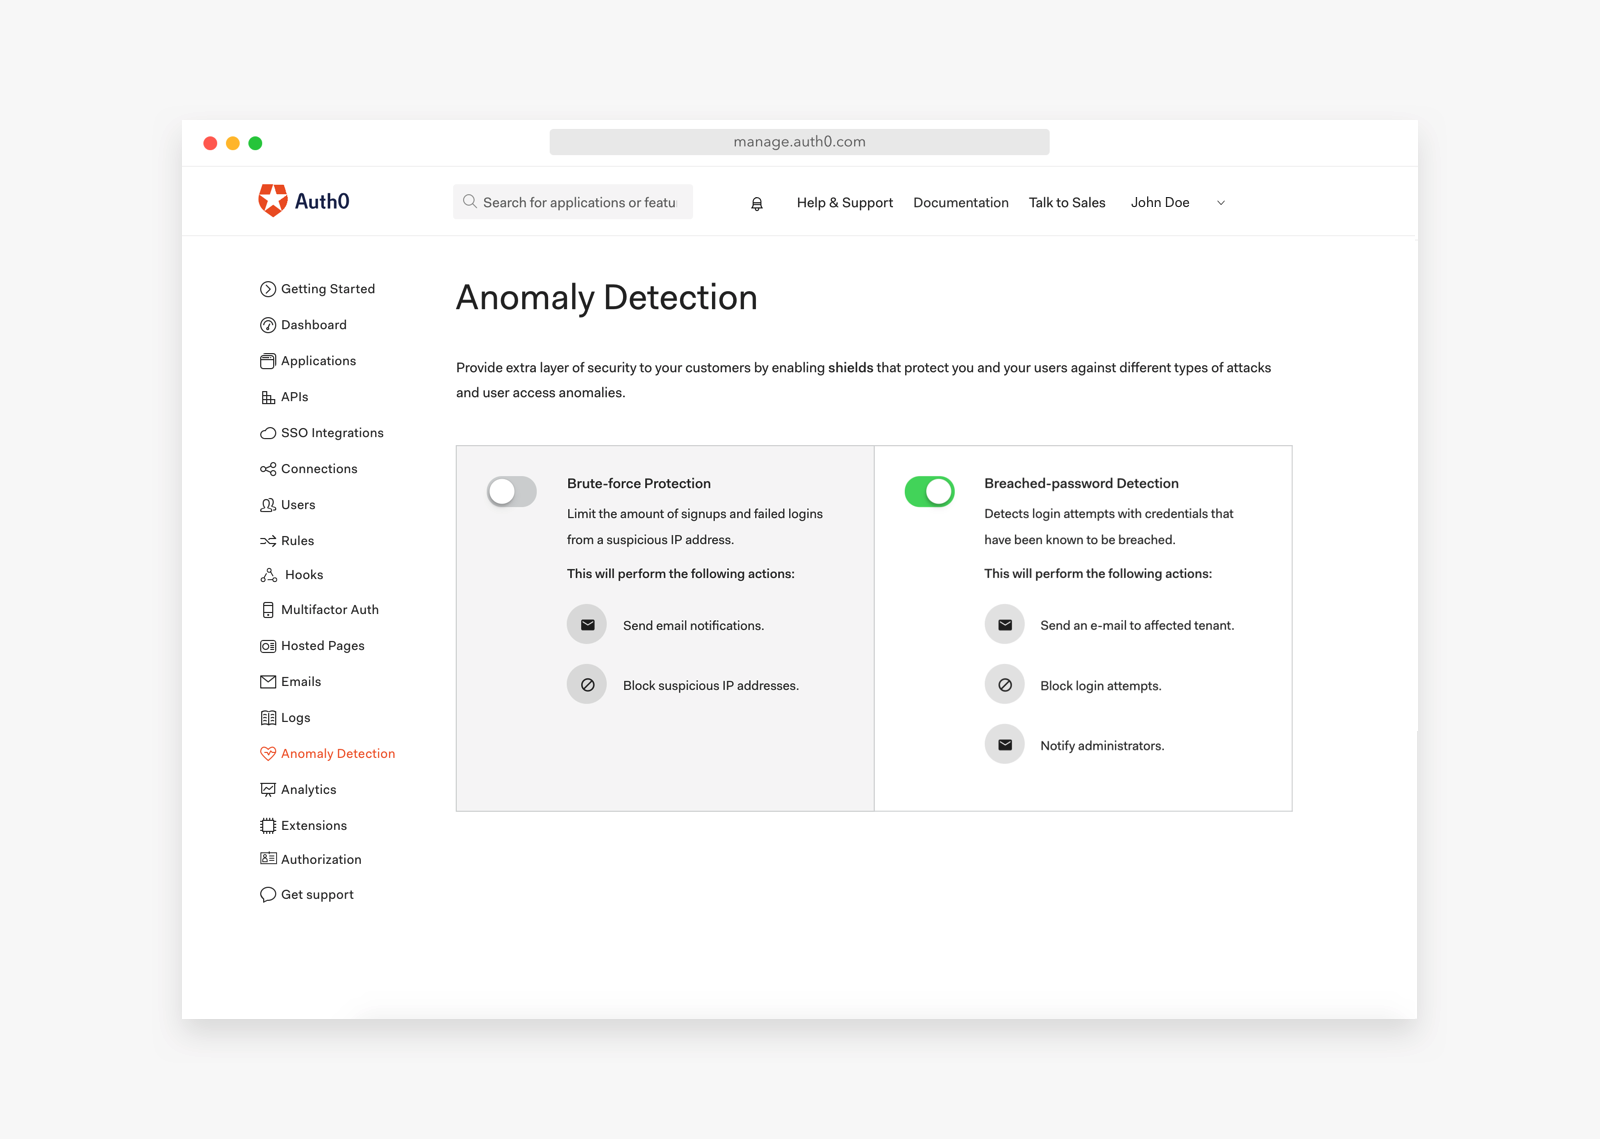 Auth0 Anomaly Detection